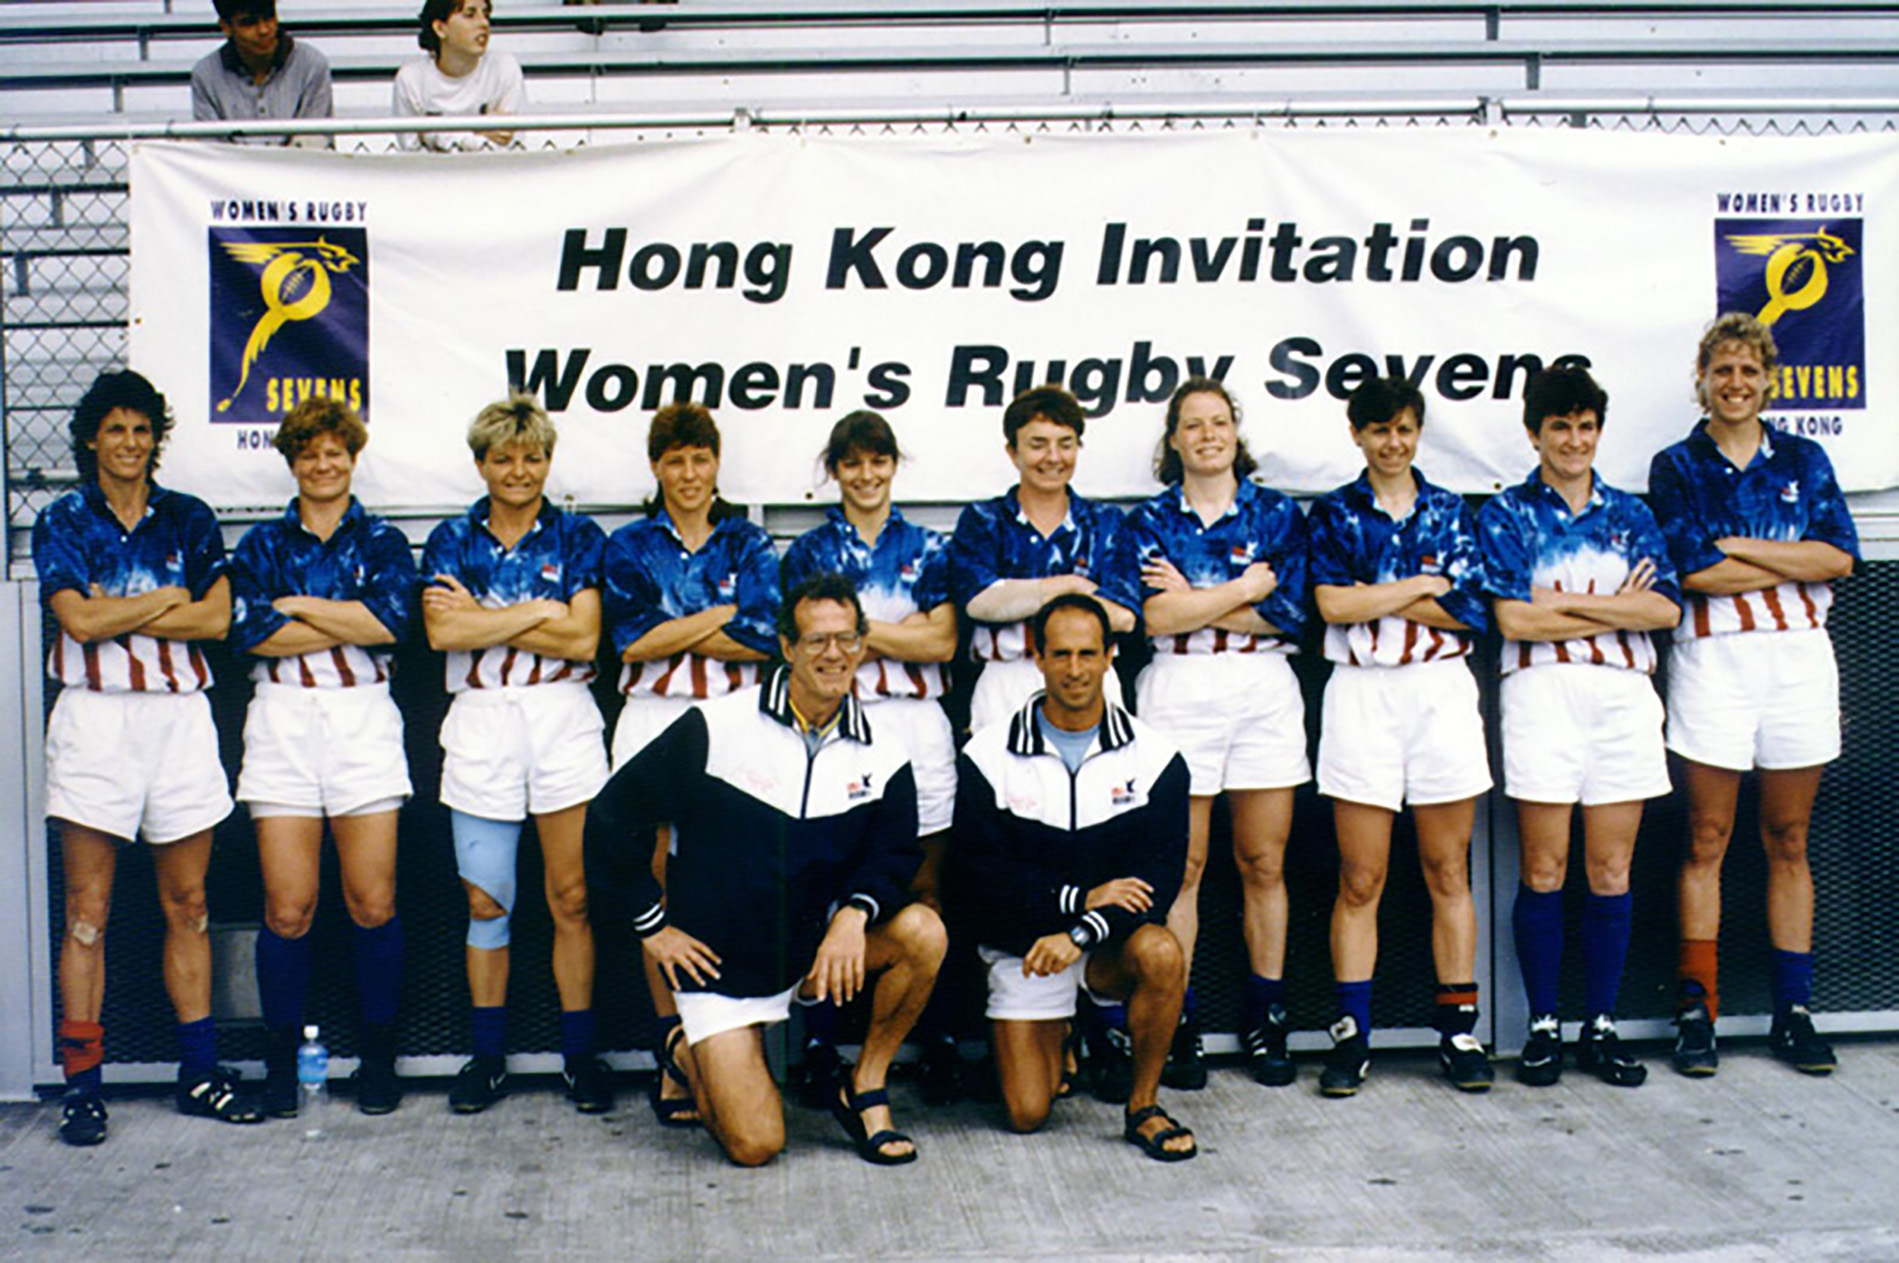 1997 USA Rugby Women's 7s Team